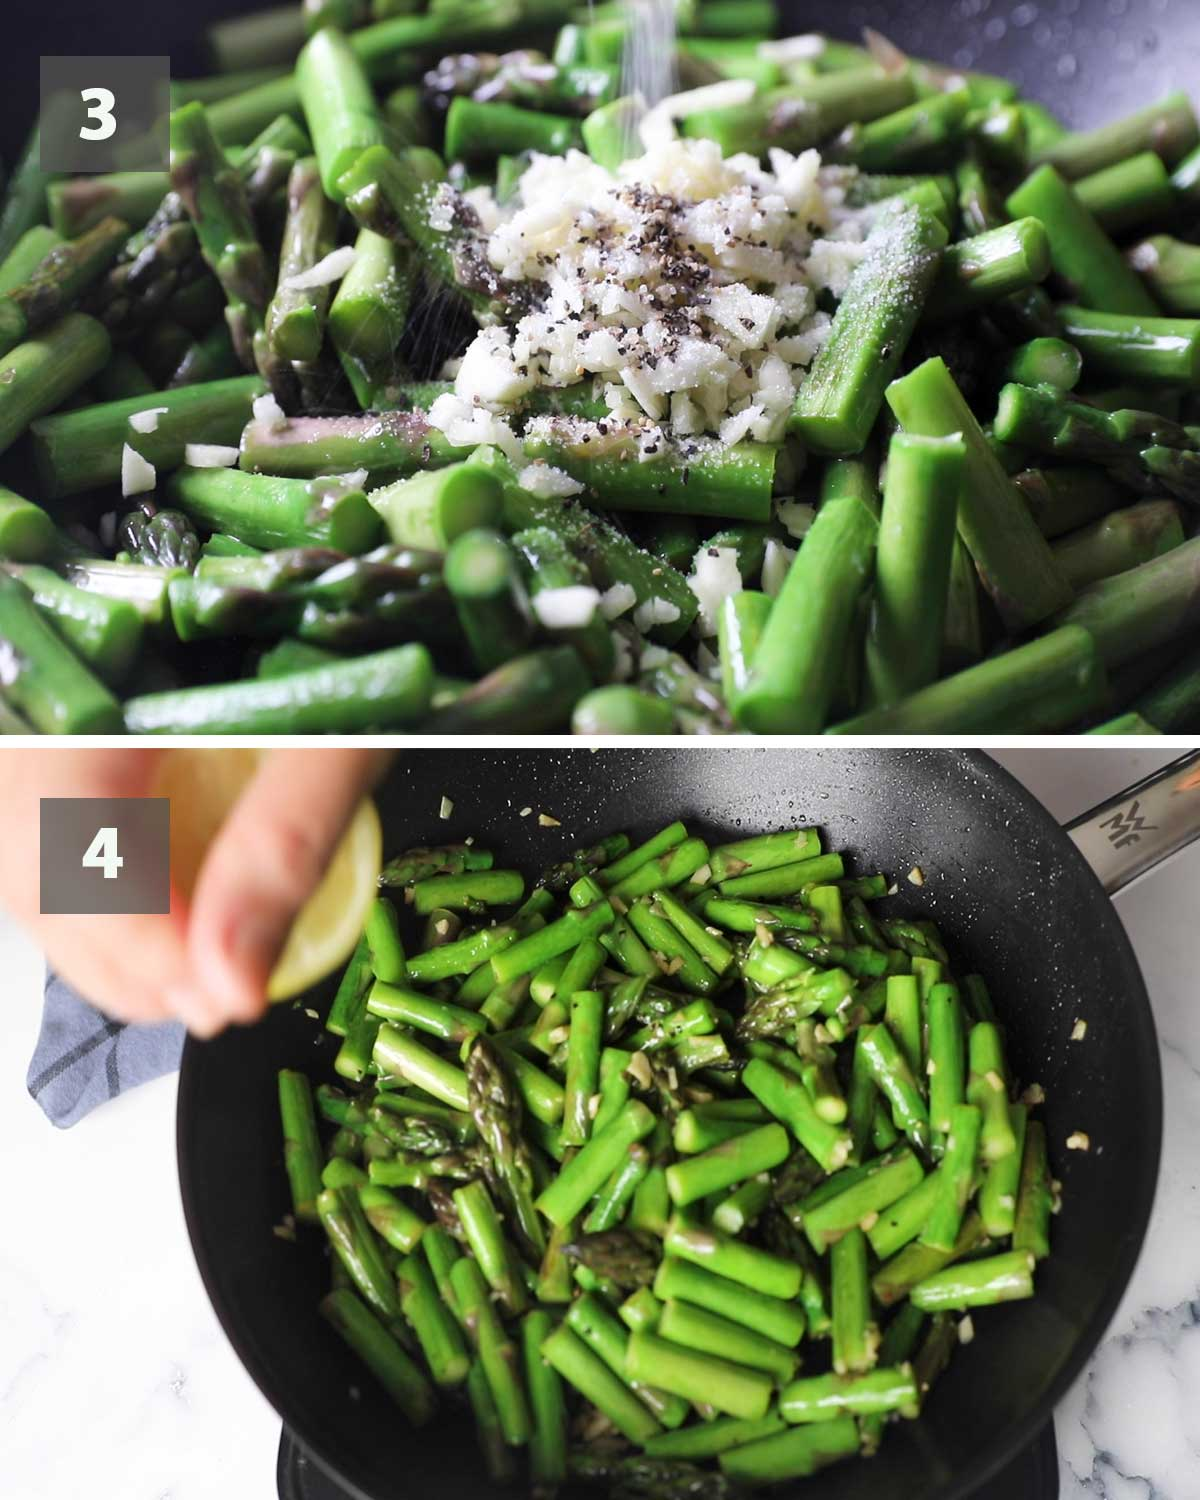 Second part of a collage of images showing the step by step process on how to make sauteed asparagus with garlic.,